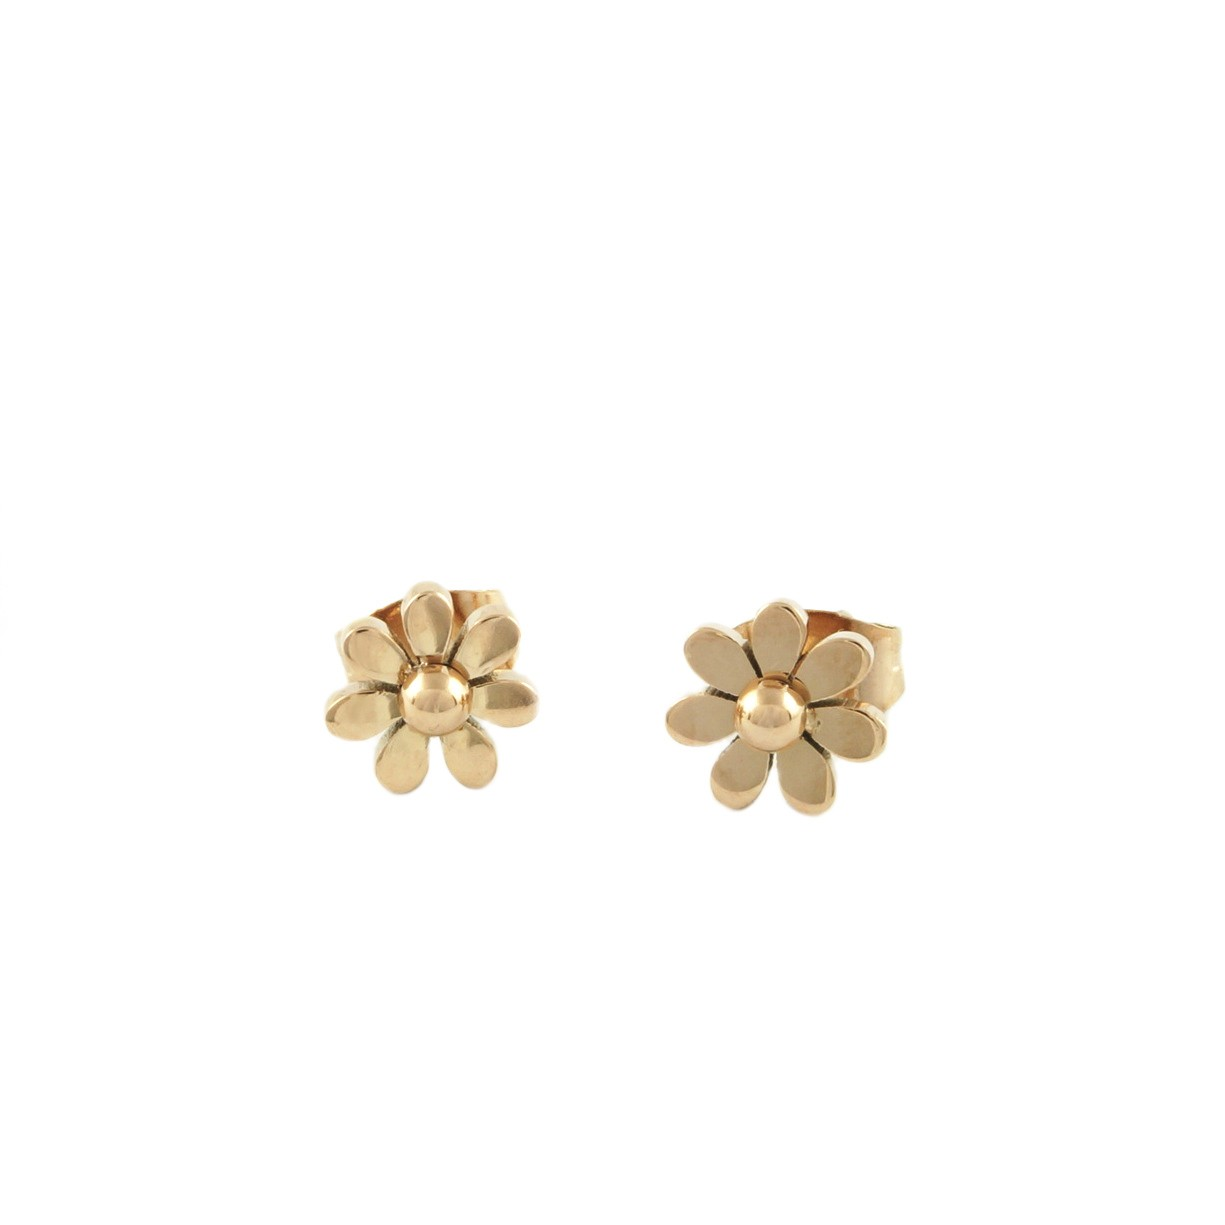 Dainty flower studs earrings